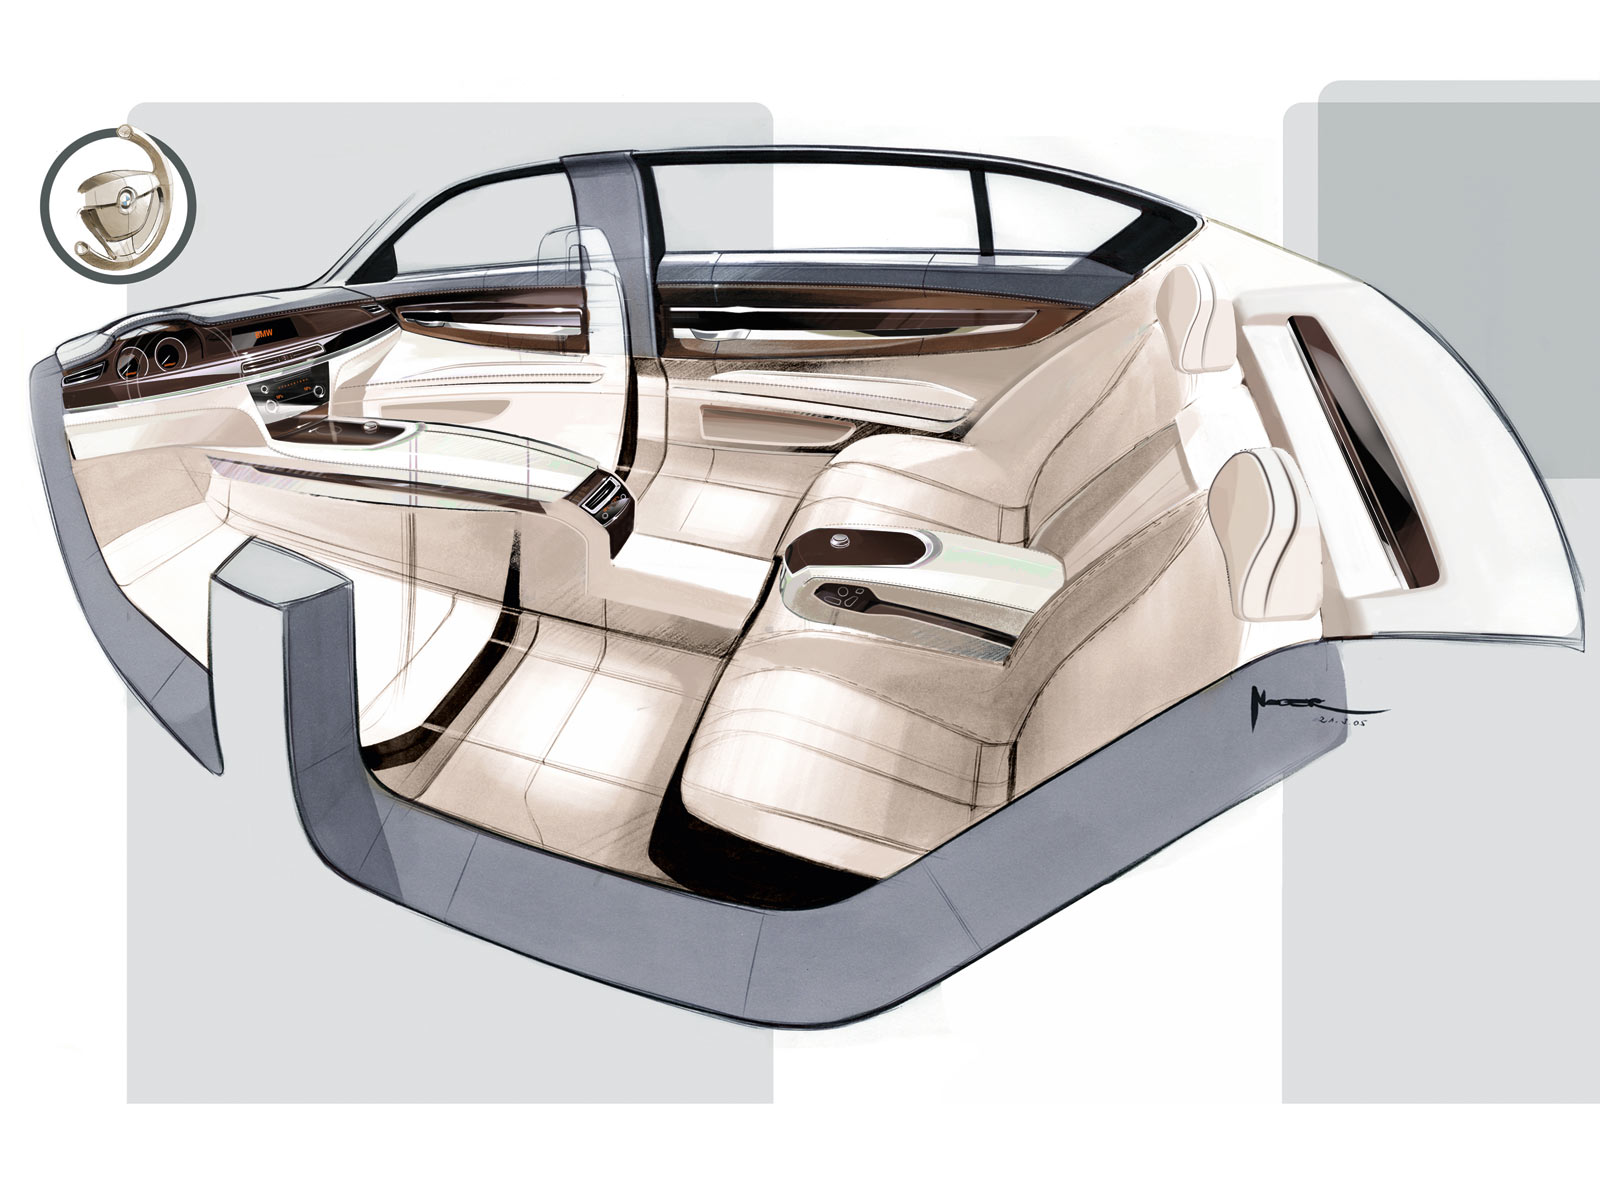 Bmw design an analysis of joy car body design - Car interior design ...